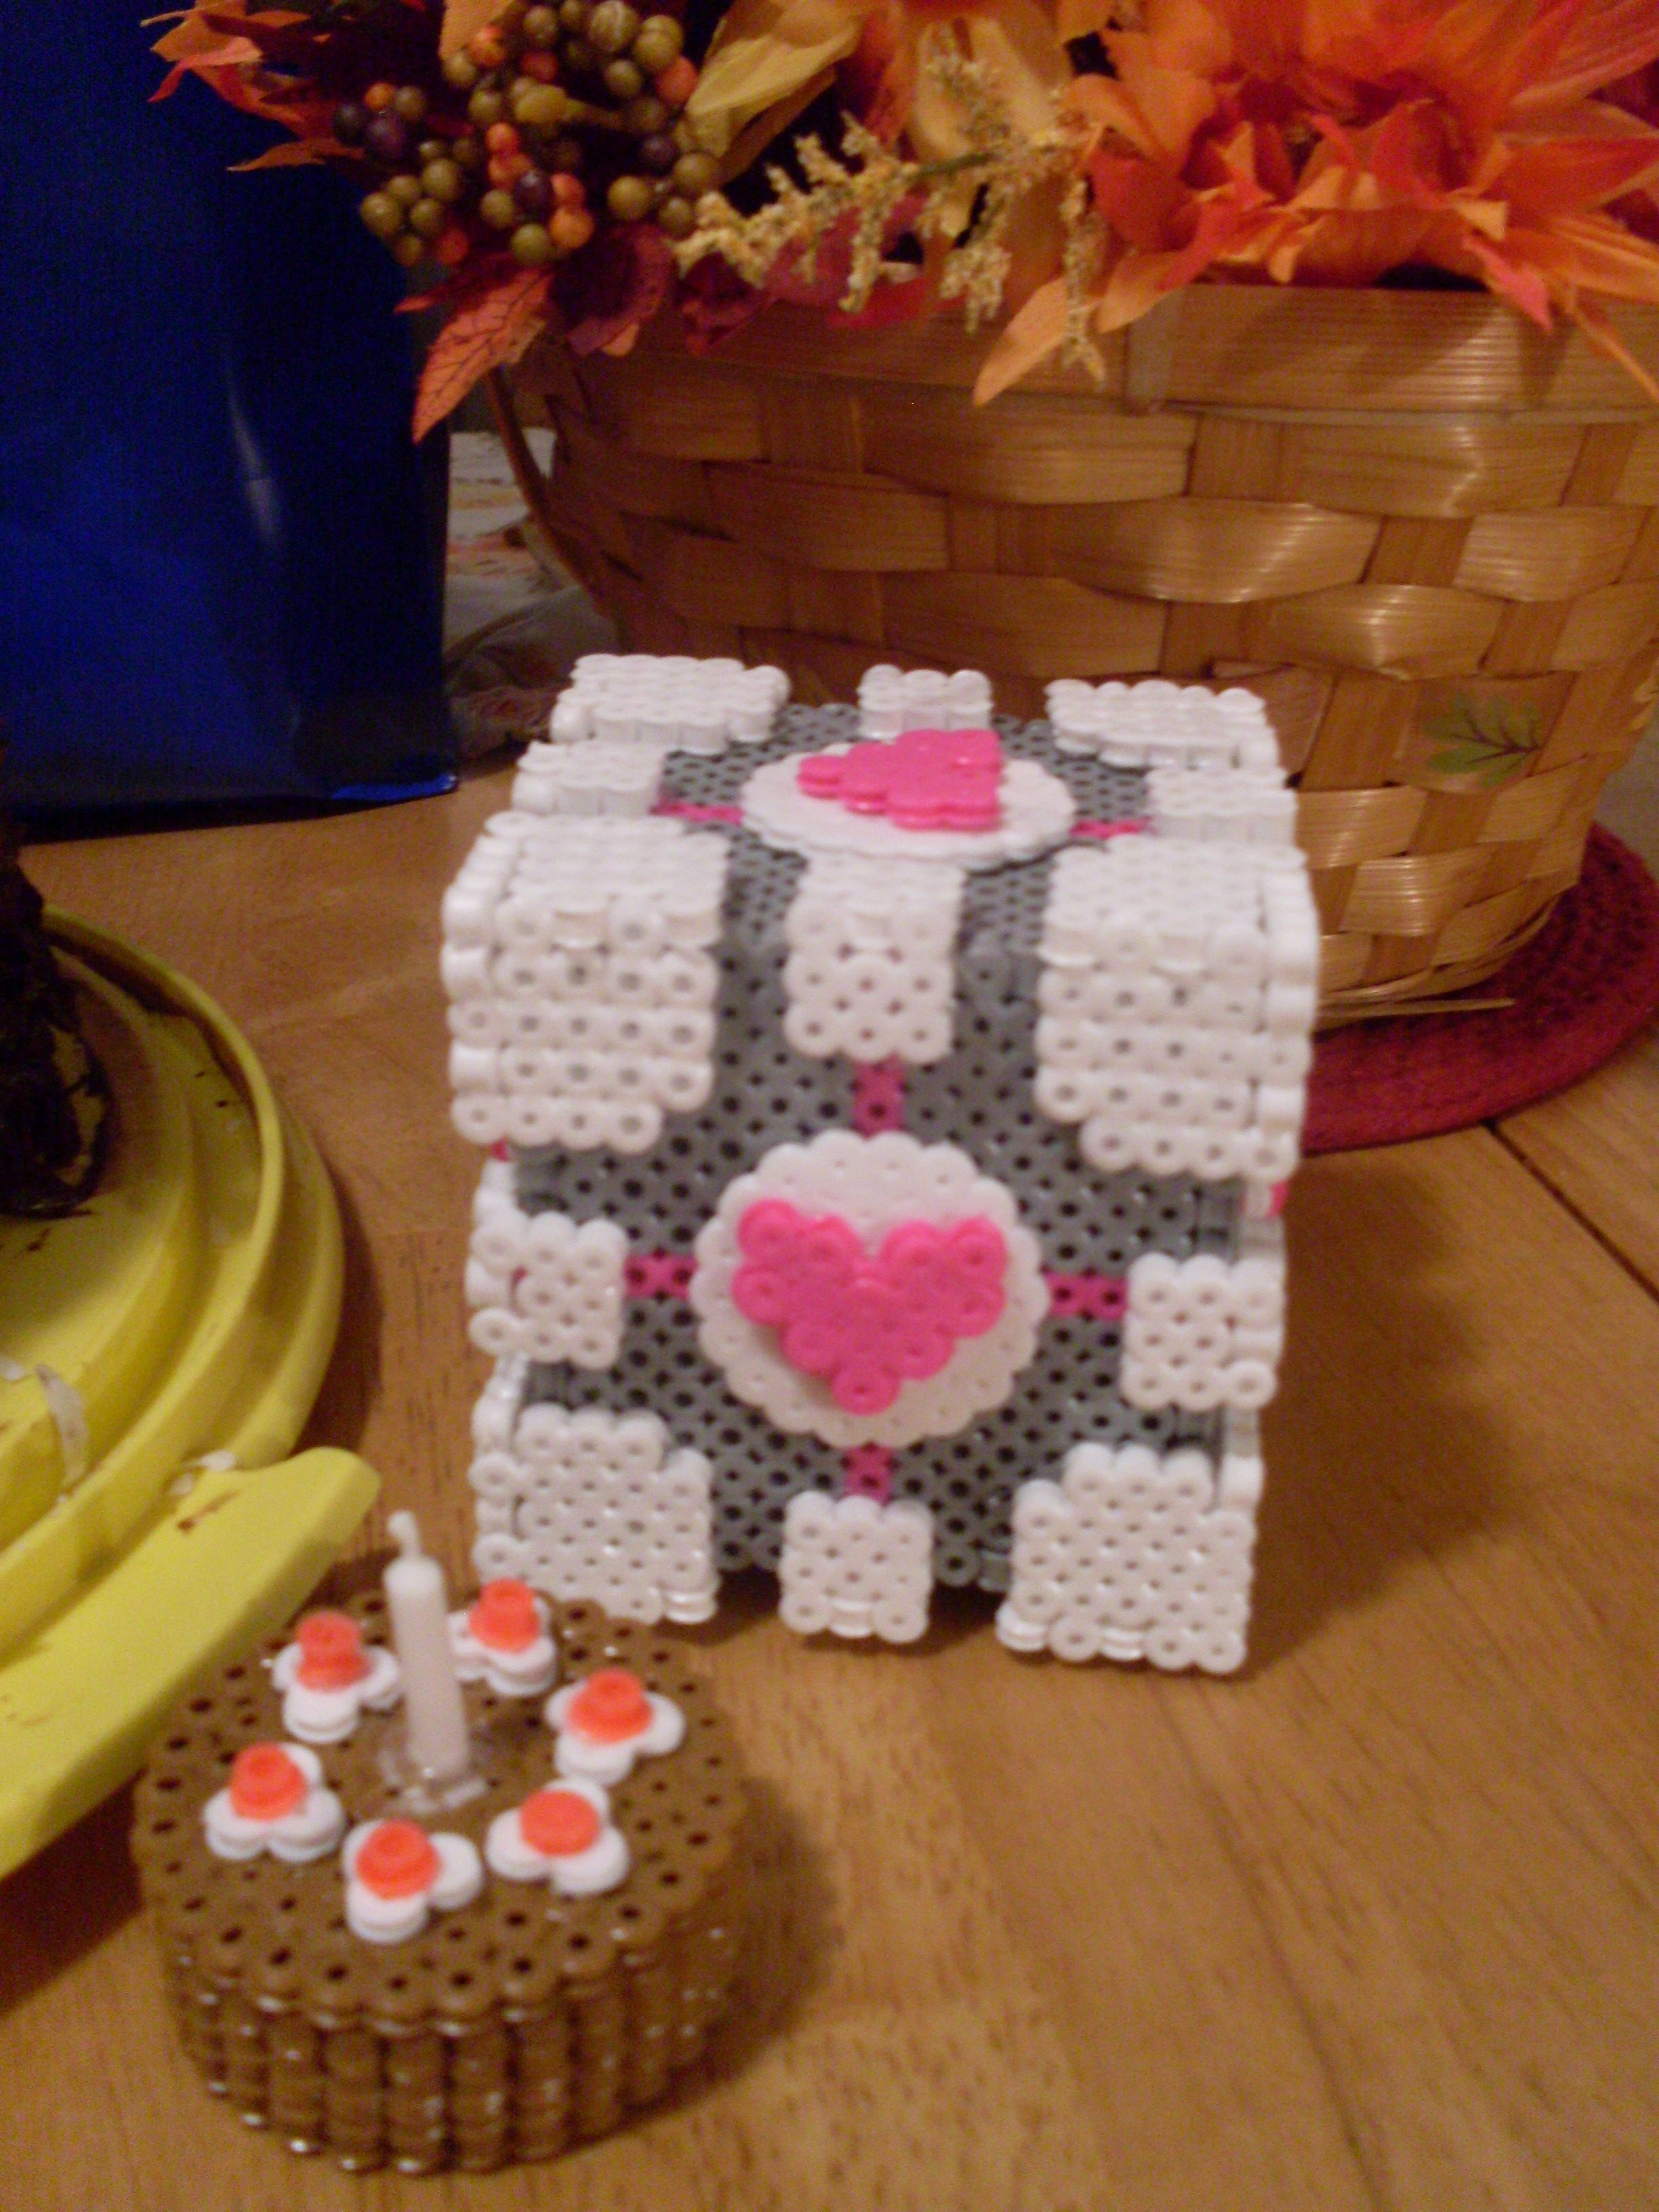 3D Weighted Companion Cube and cake from the portal series